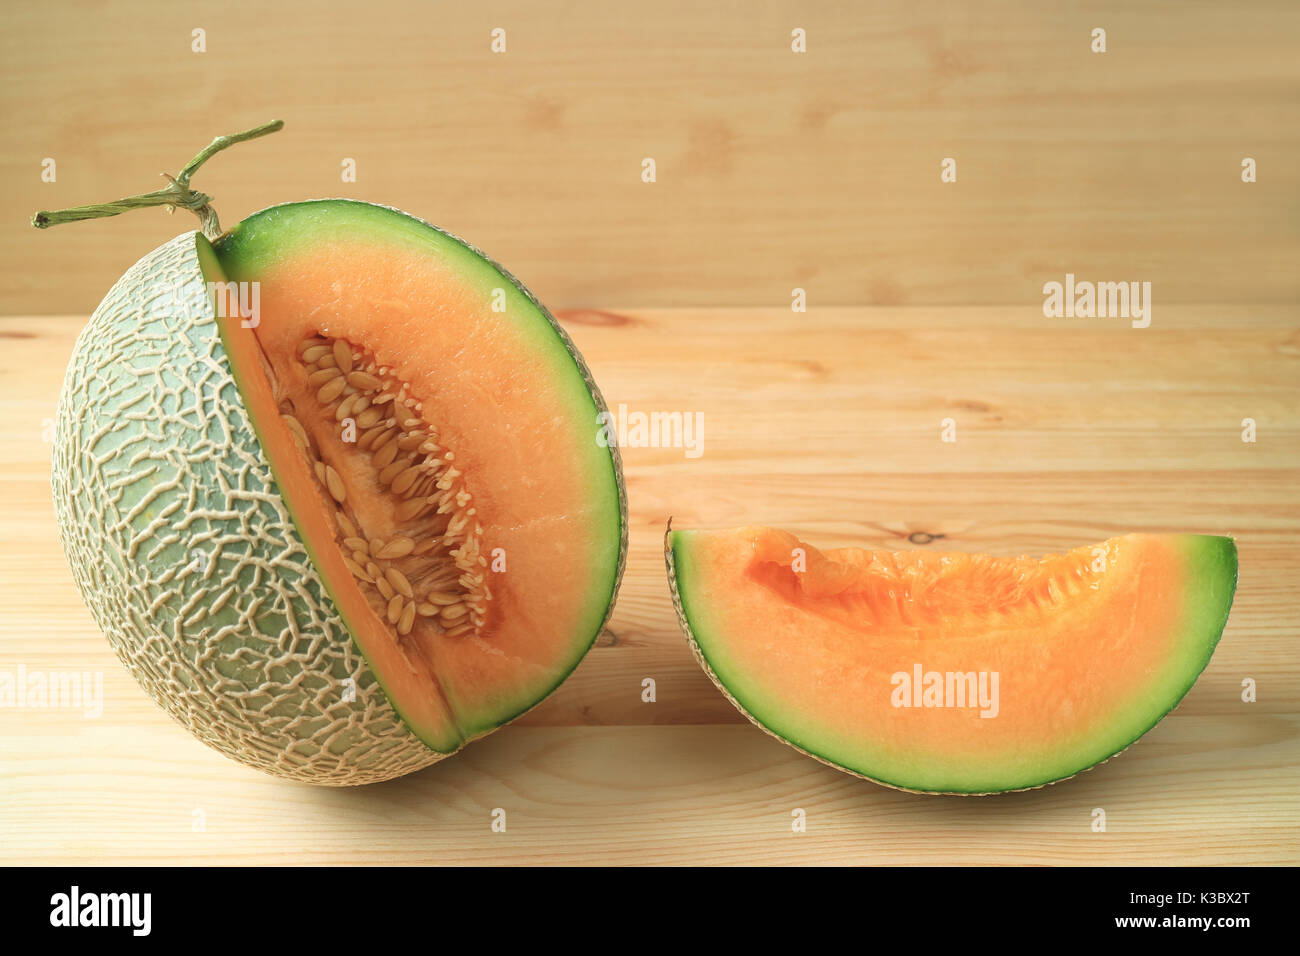 Fresh Ripe Muskmelon Sliced From The Whole Fruit Isolated On A Wooden Stock Photo Alamy Look for cantaloupes with solid rinds where the netting stands out on the surface. https www alamy com fresh ripe muskmelon sliced from the whole fruit isolated on a wooden image156999216 html